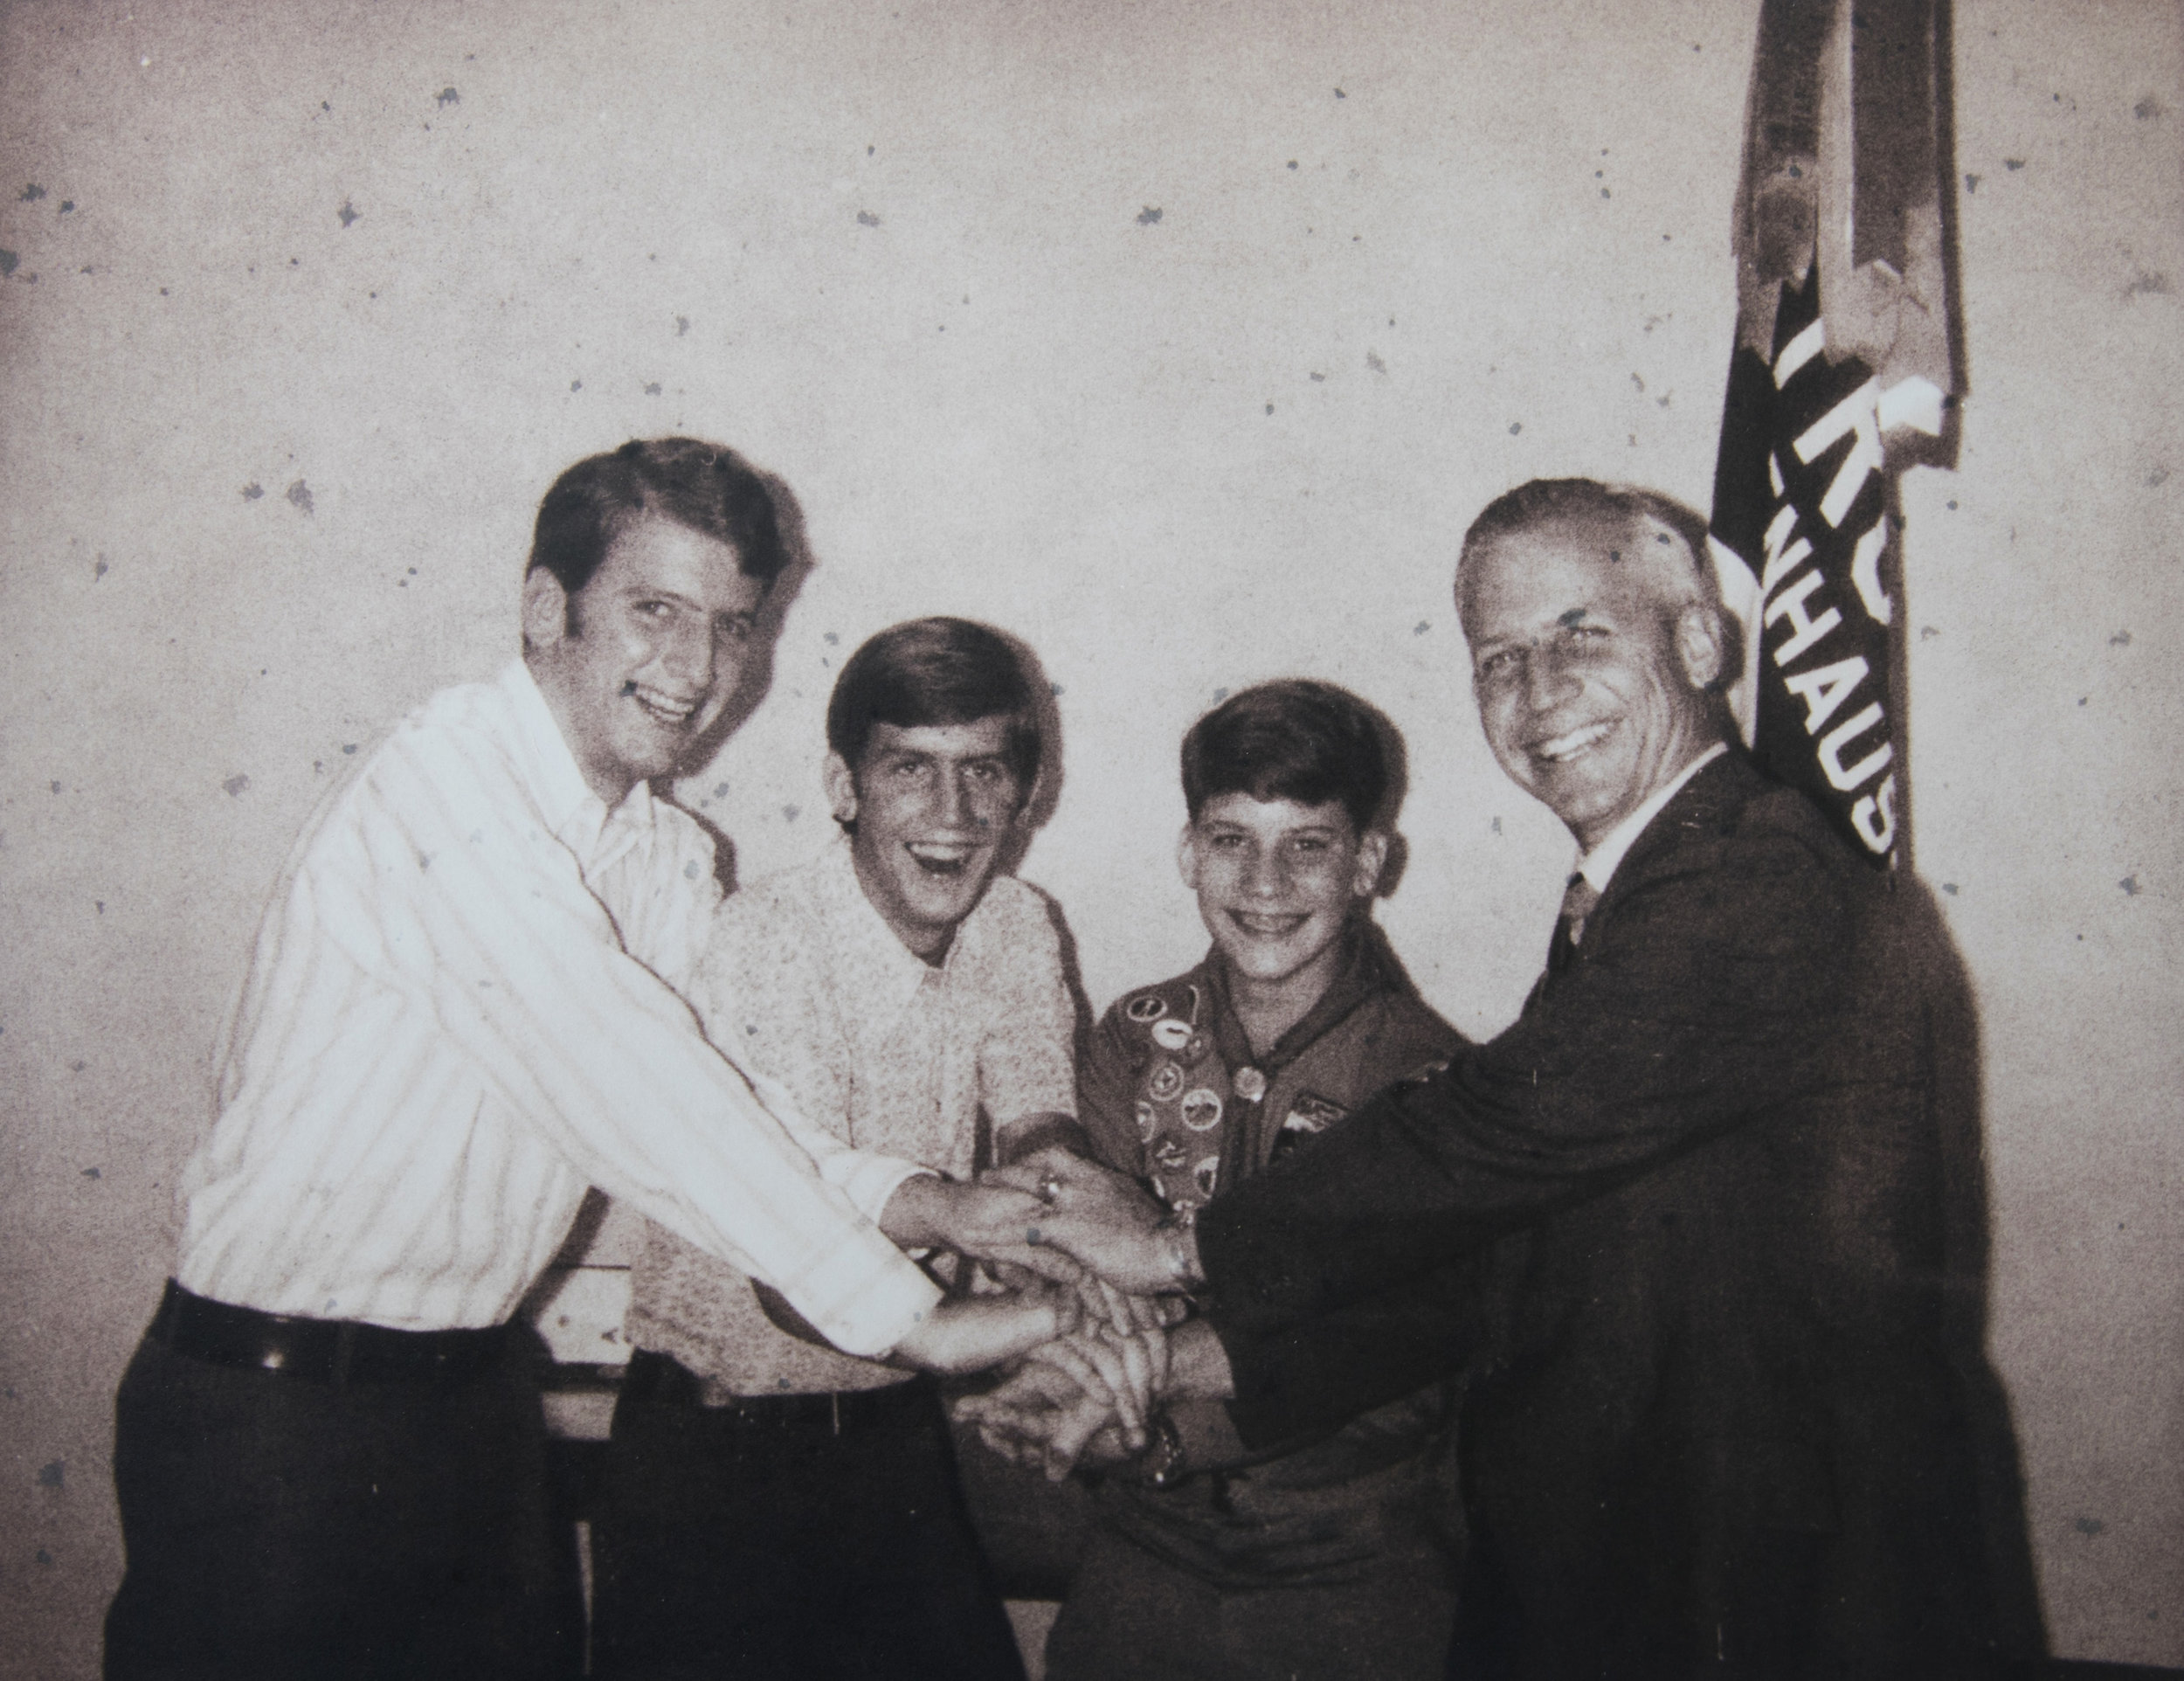 ^ Four Eagle Scouts – Josh III, Don, William and Josh, Jr. – when William received his Eagle badge in 1971.